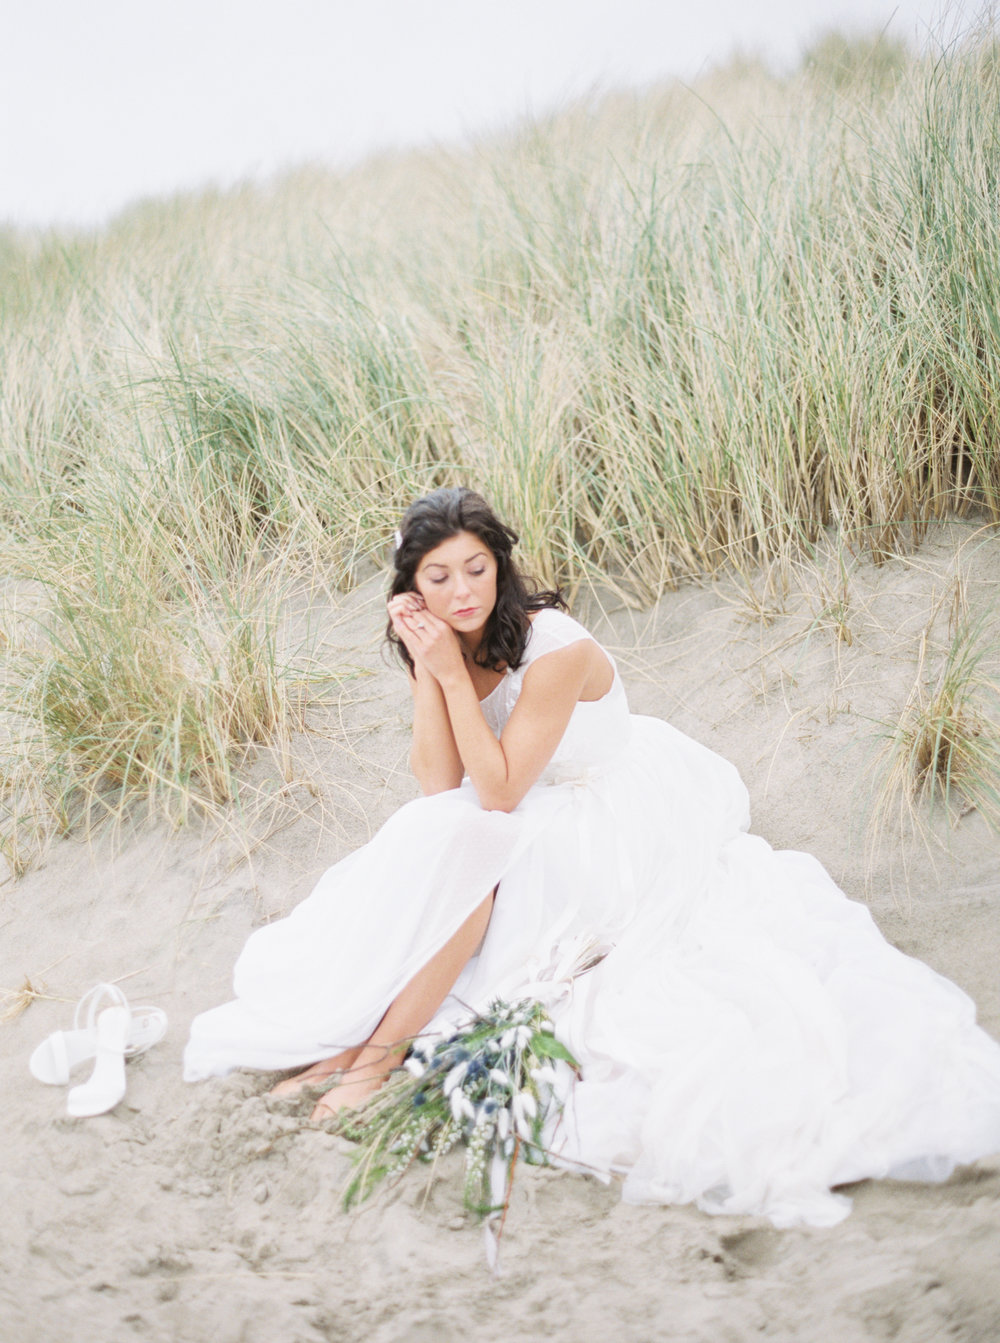 Jacqueline Anne Photography, Beach Wedding Session captured in Portland, Halifax Nova Scotia Wedding Photographer  White Embroidered Wedding Dresses, Kathryn Bass Bridal